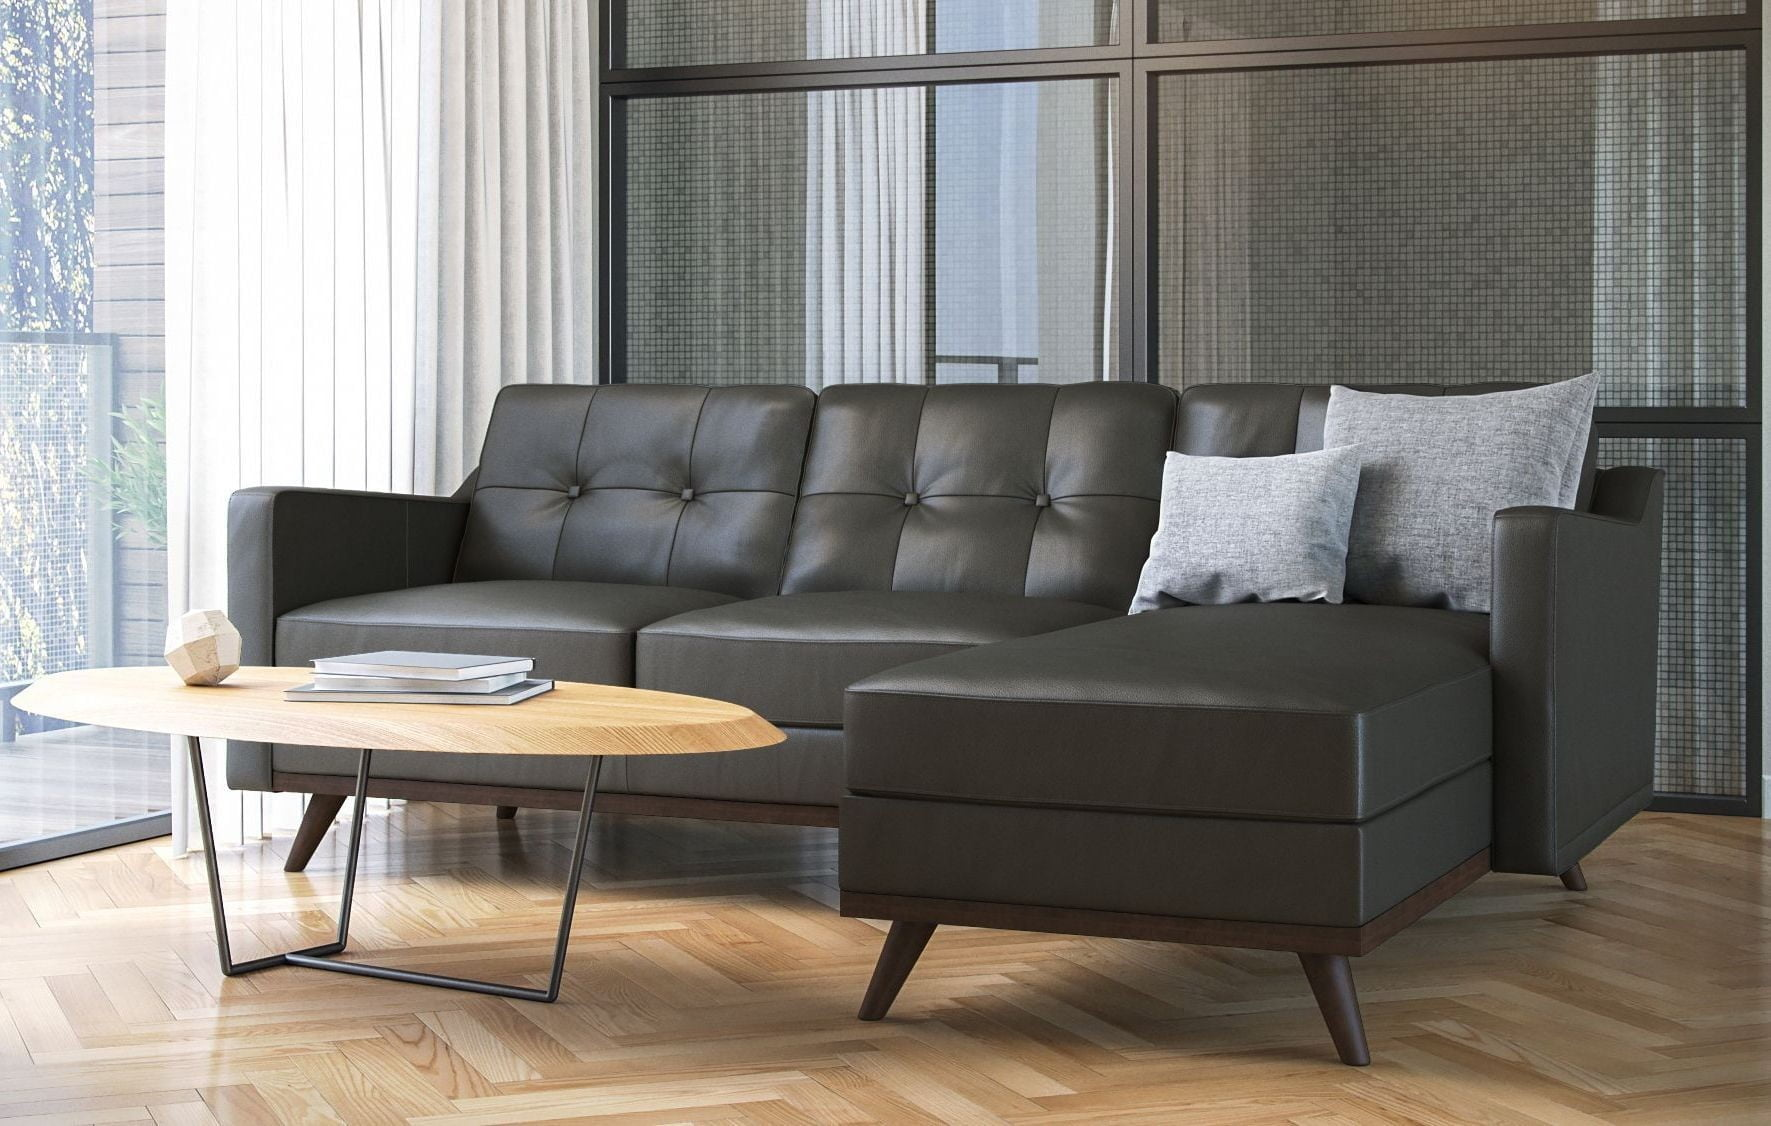 monika charcoal grey leather sectional from moroni coleman furniture. Black Bedroom Furniture Sets. Home Design Ideas